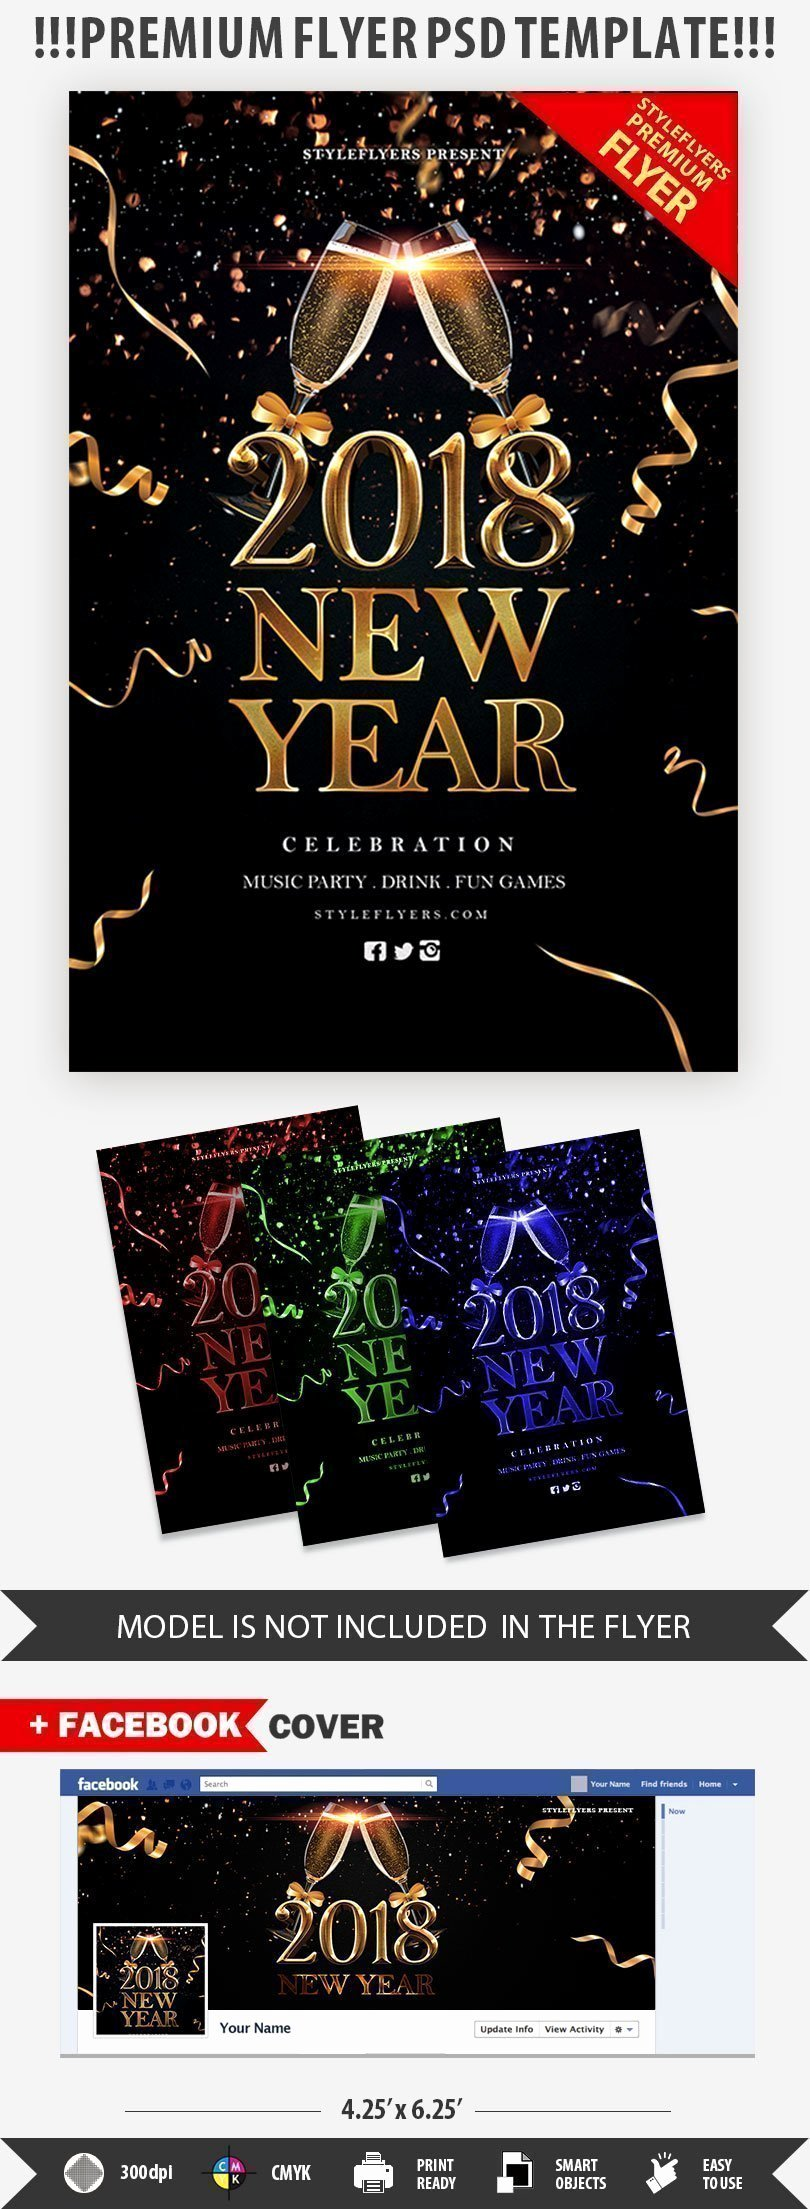 New Year Flyer Template Fresh New Year 2018 Psd Flyer Template Styleflyers